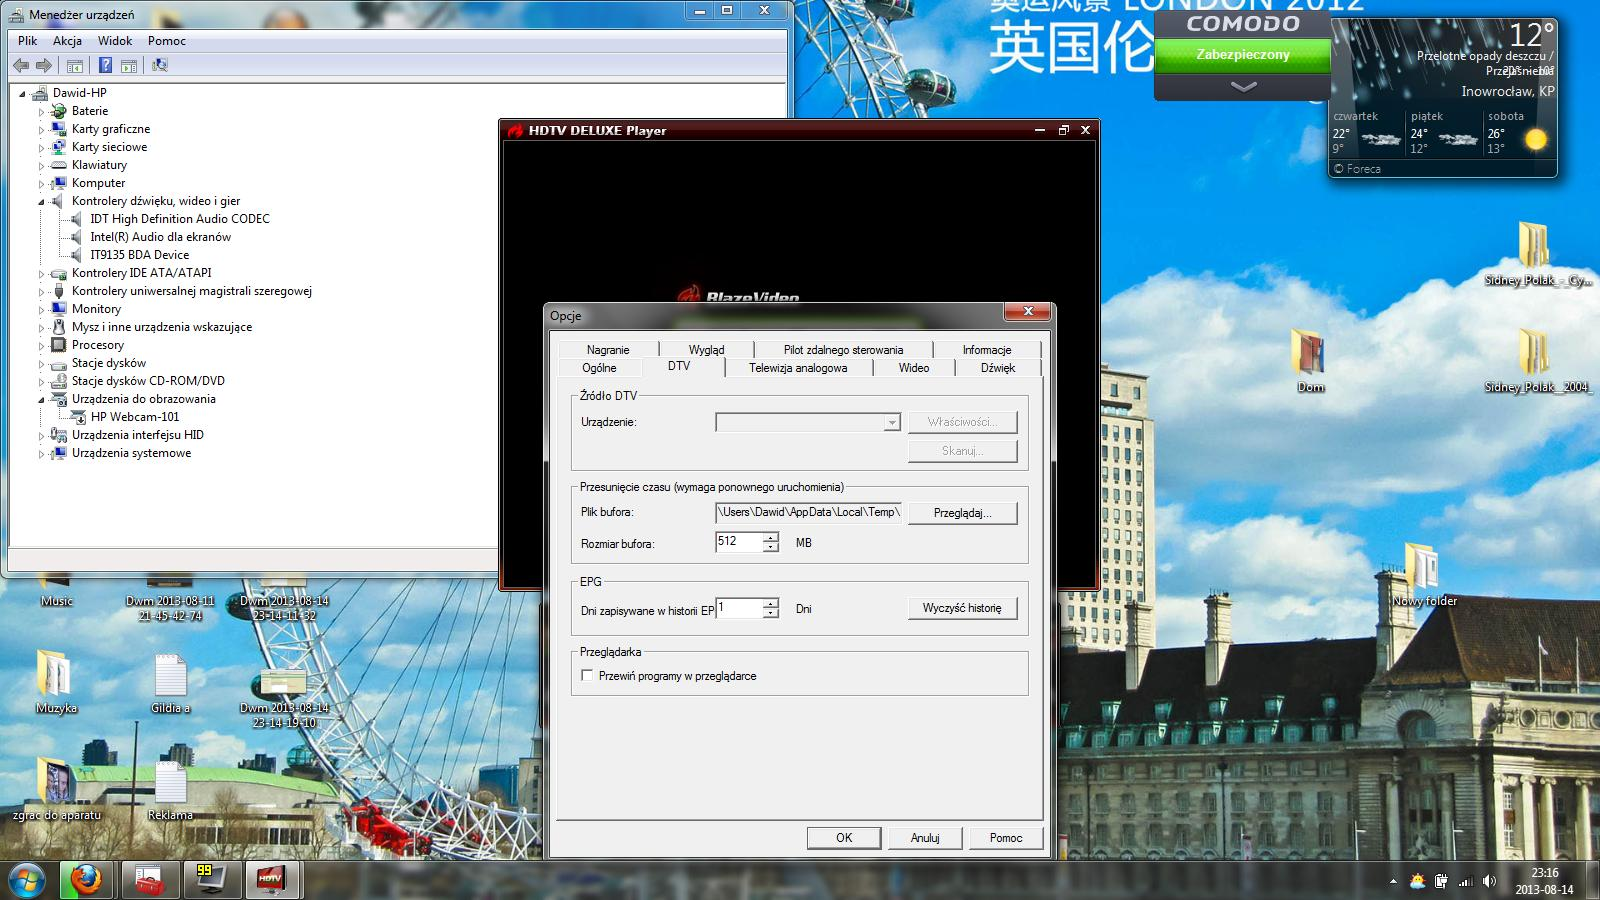 It9130 bda driver windows 7 64 bit